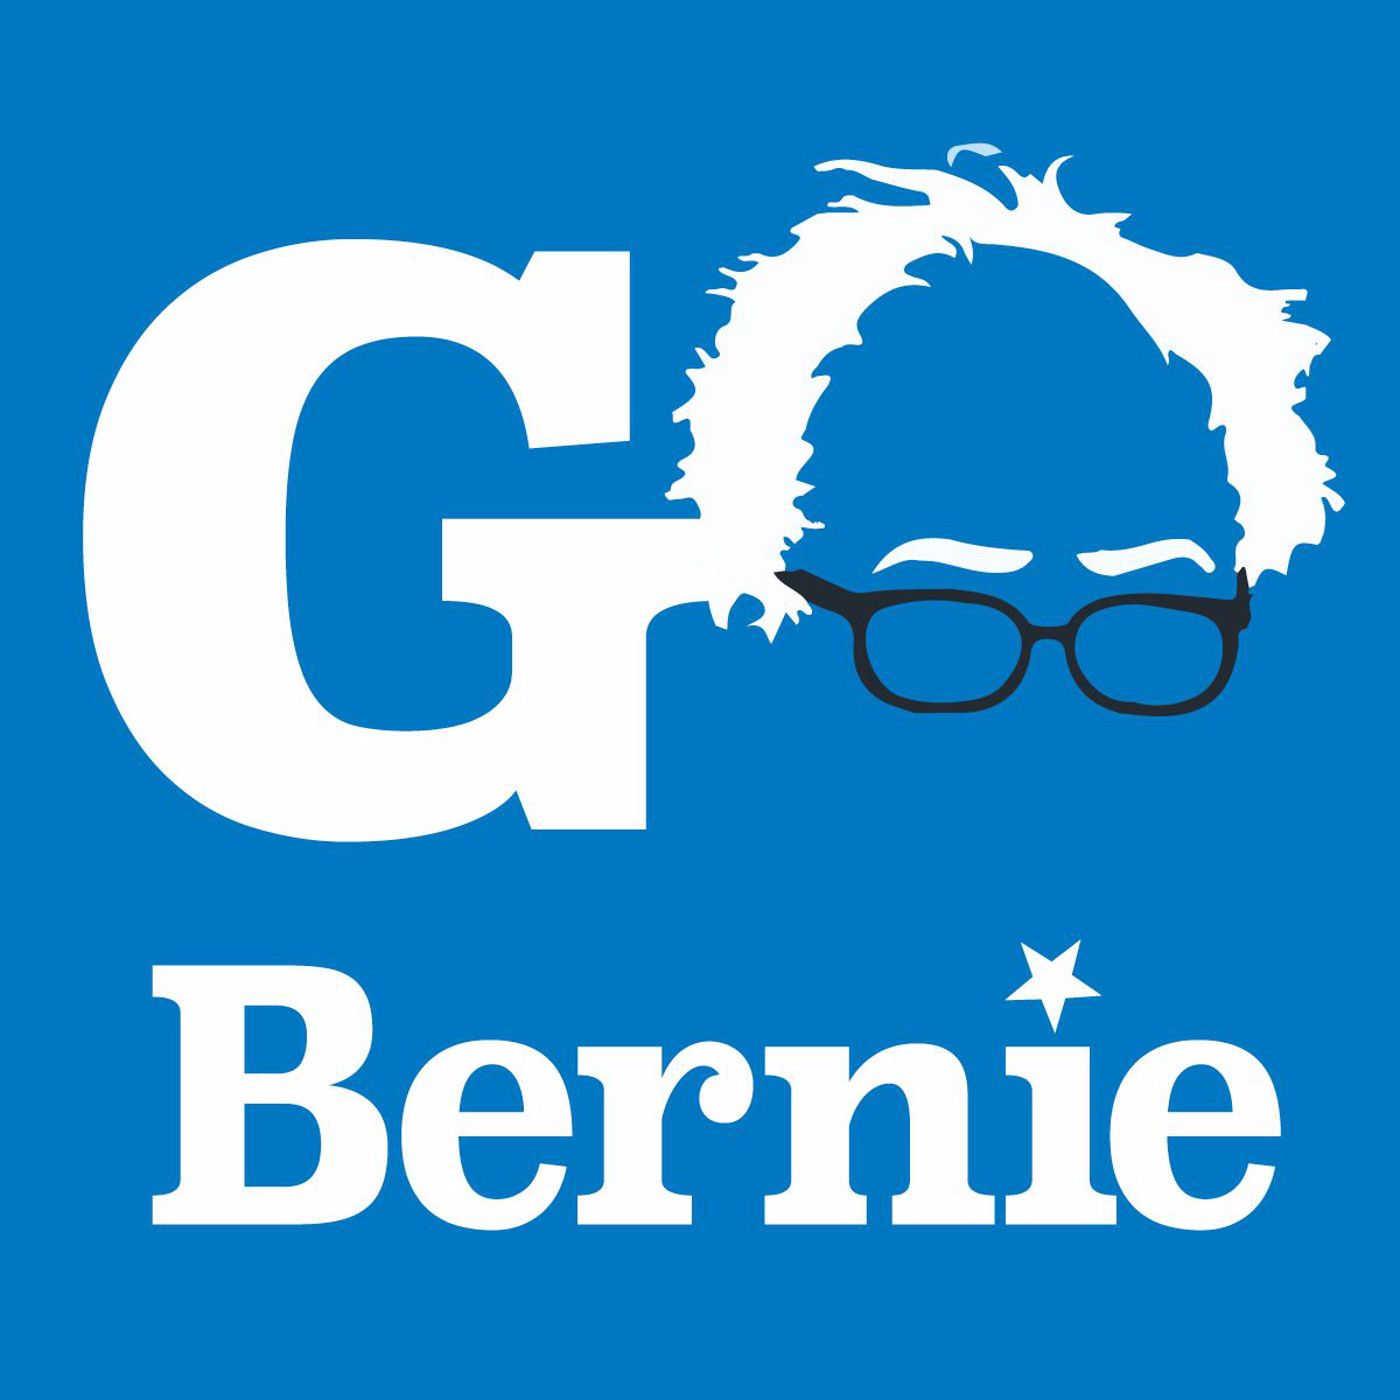 Go Bernie Podcast